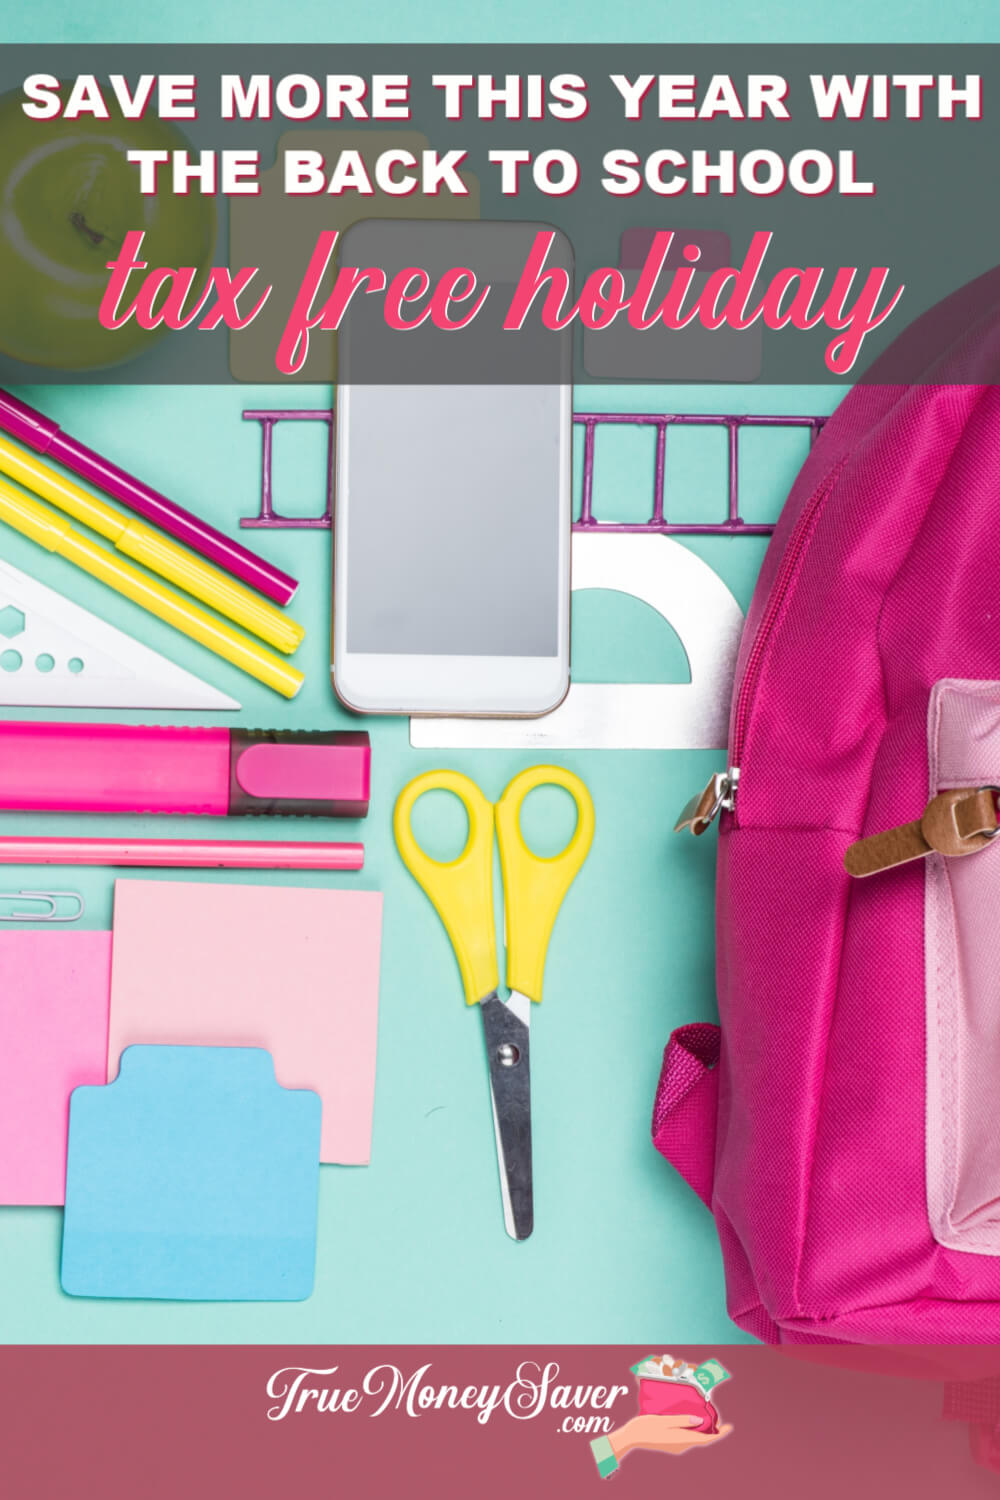 It\'s time for a TAX FREE SHOPPING WEEKEND! That means during certain days you\'ll be able to shop and pay NO TAX on lots of Back To School Items! #truemoneysaver #backtoschool #school #taxfree #taxfreeweekend